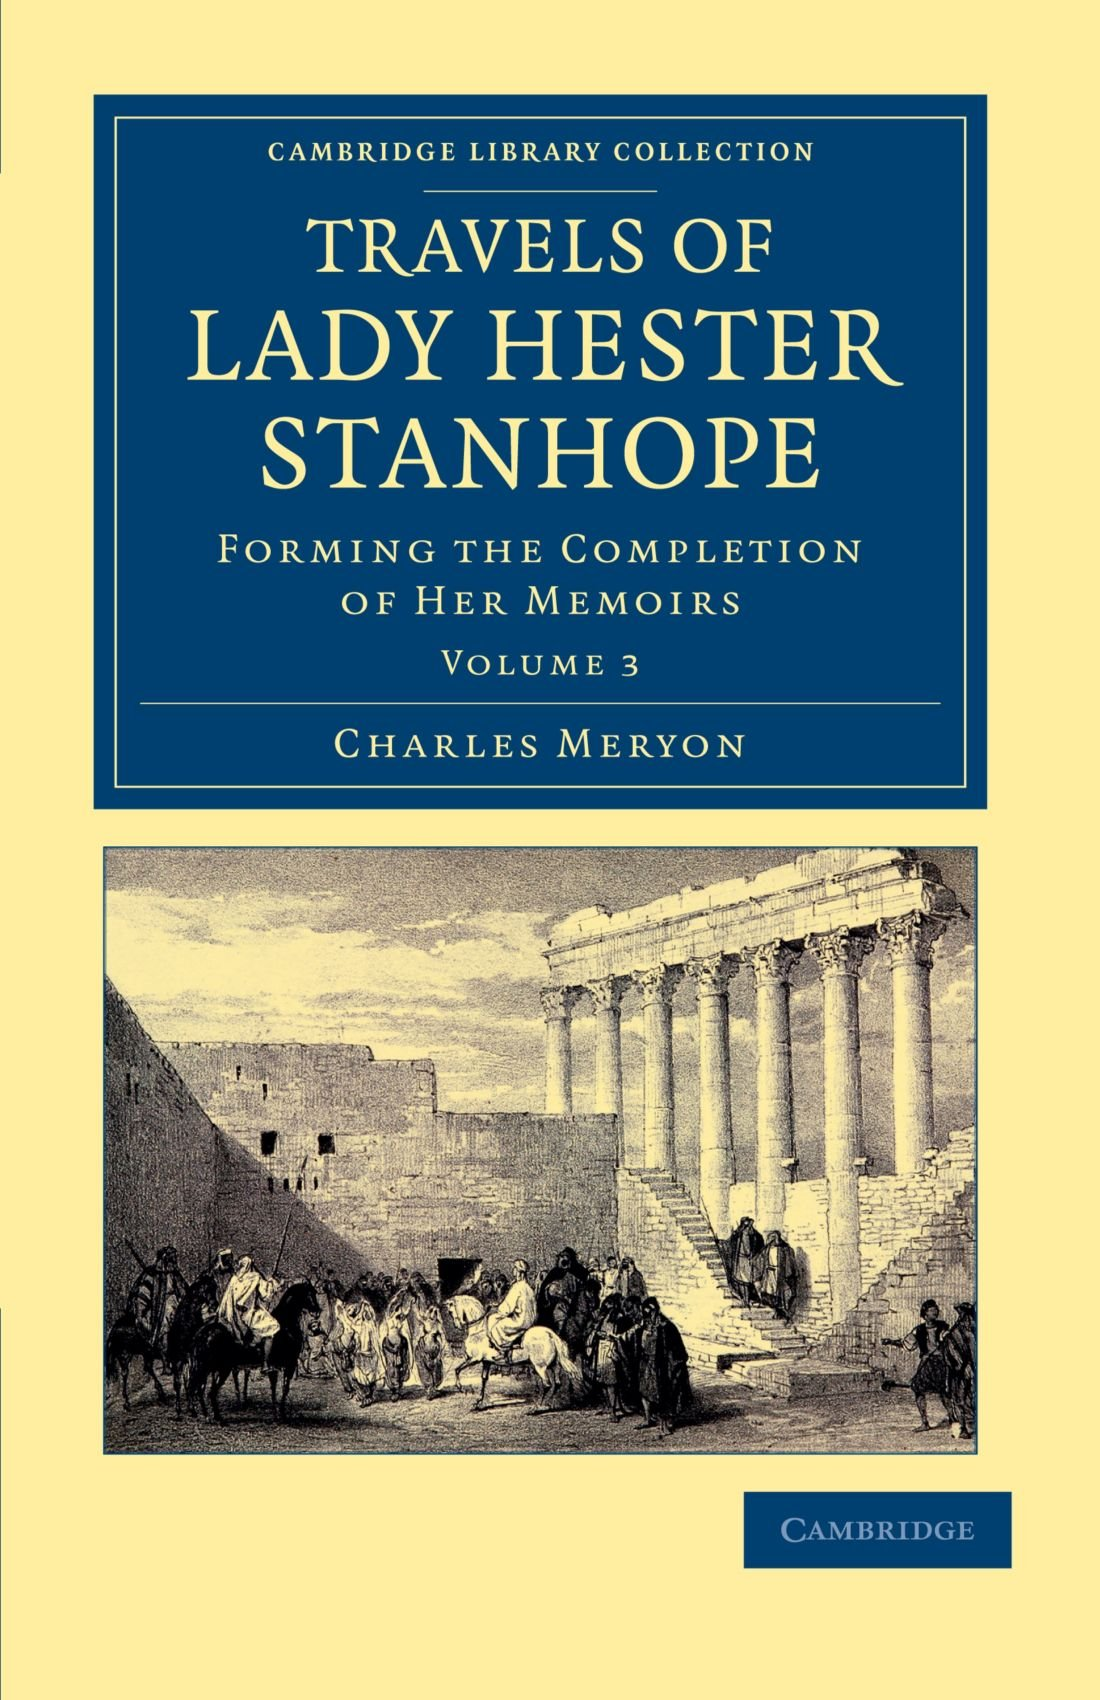 Travels of Lady Hester Stanhope: Forming the Completion of her Memoirs (Cambridge Library Collection - Travel, Middle East and Asia Minor) (Volume 3) pdf epub